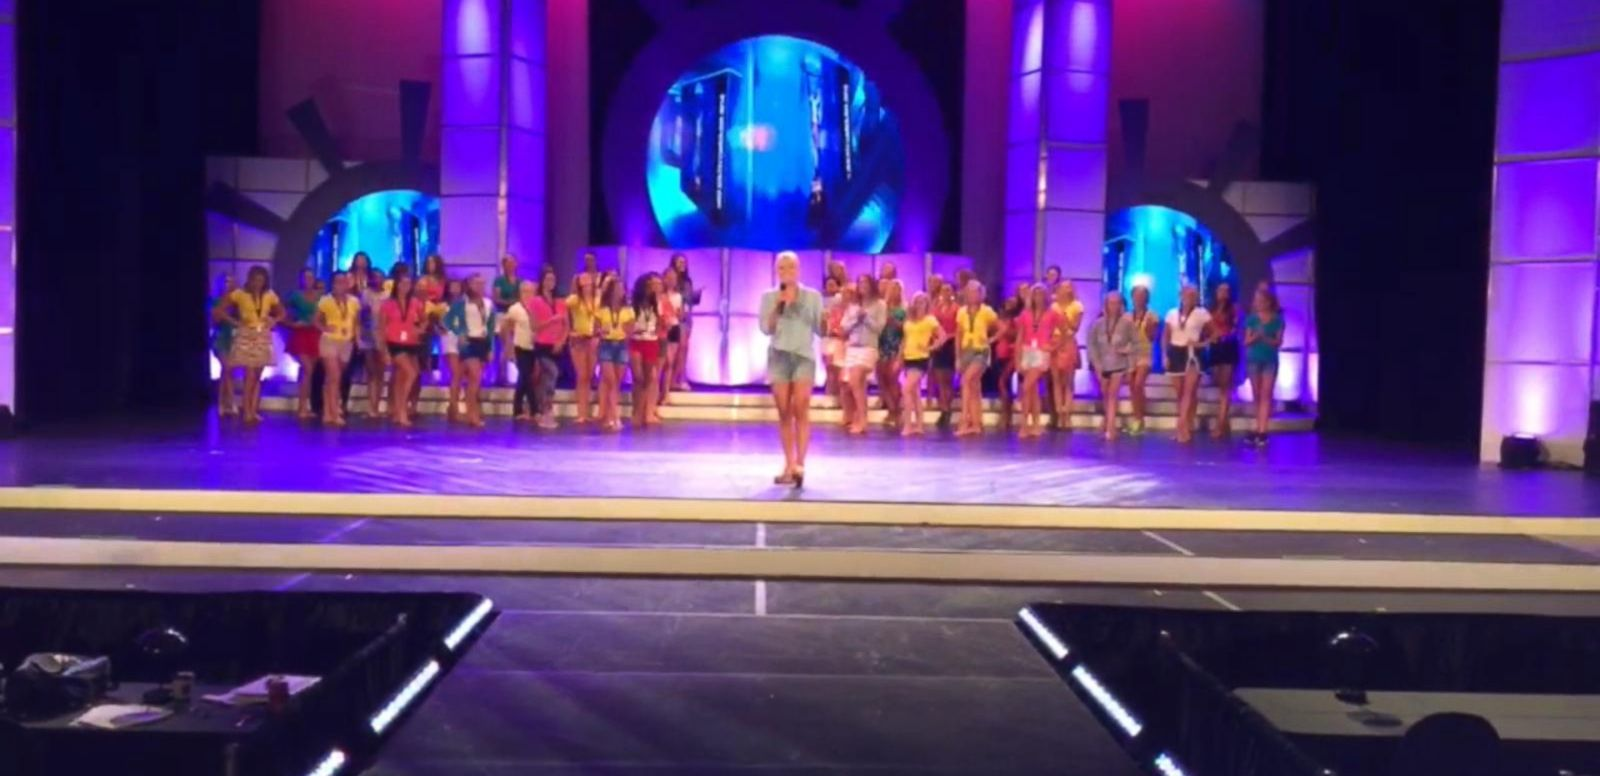 VIDEO: Behind the Scenes at the Miss South Carolina Pageant Rehearsal